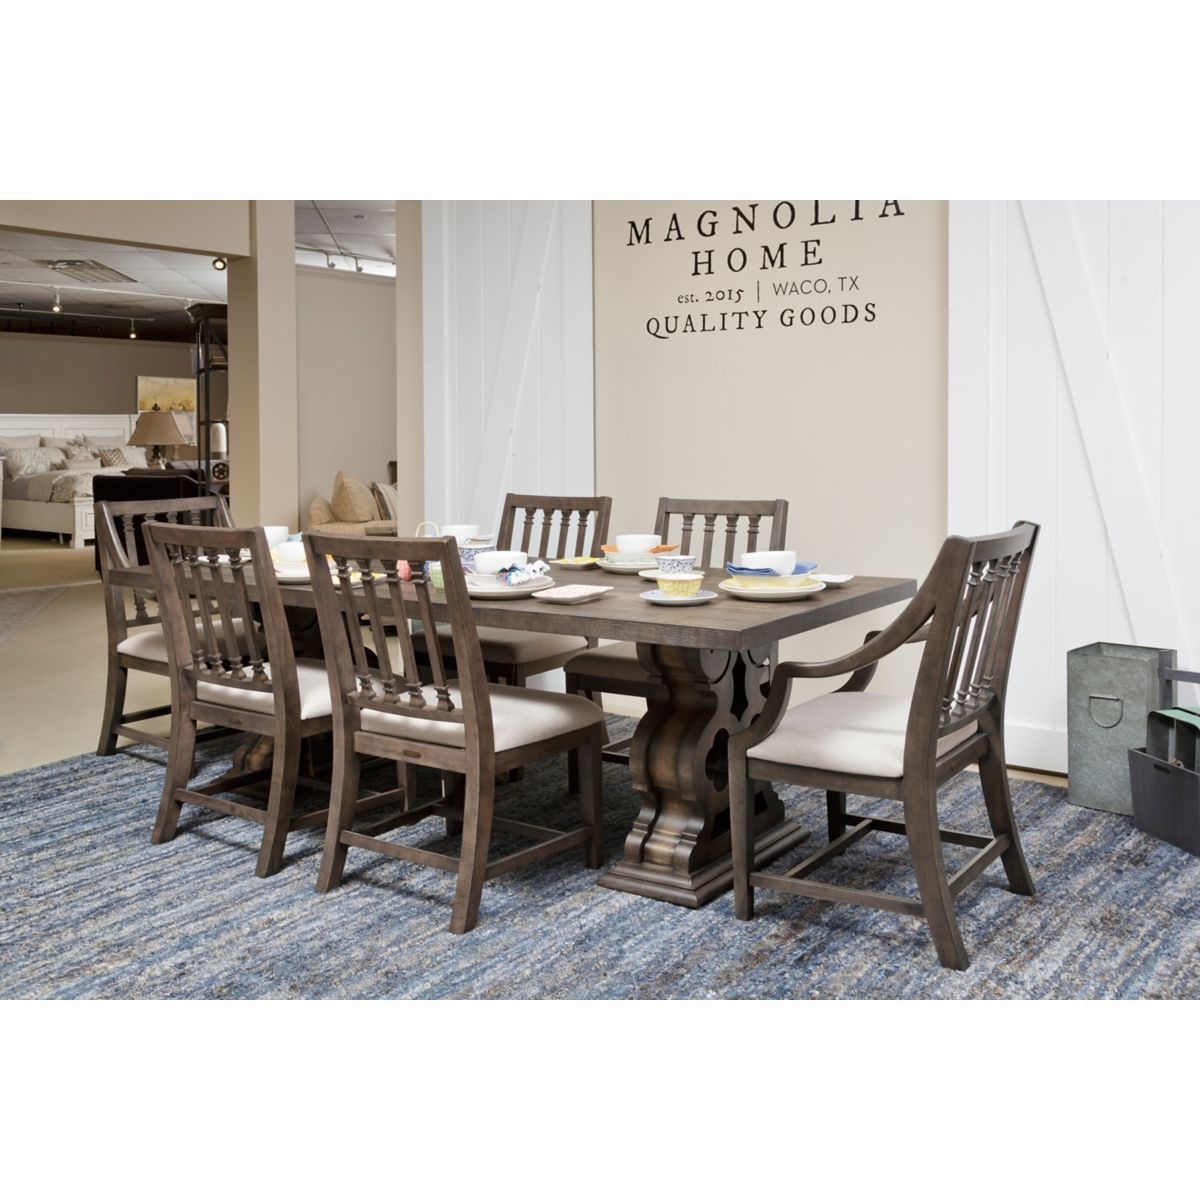 New Magnolia Hall Furniture